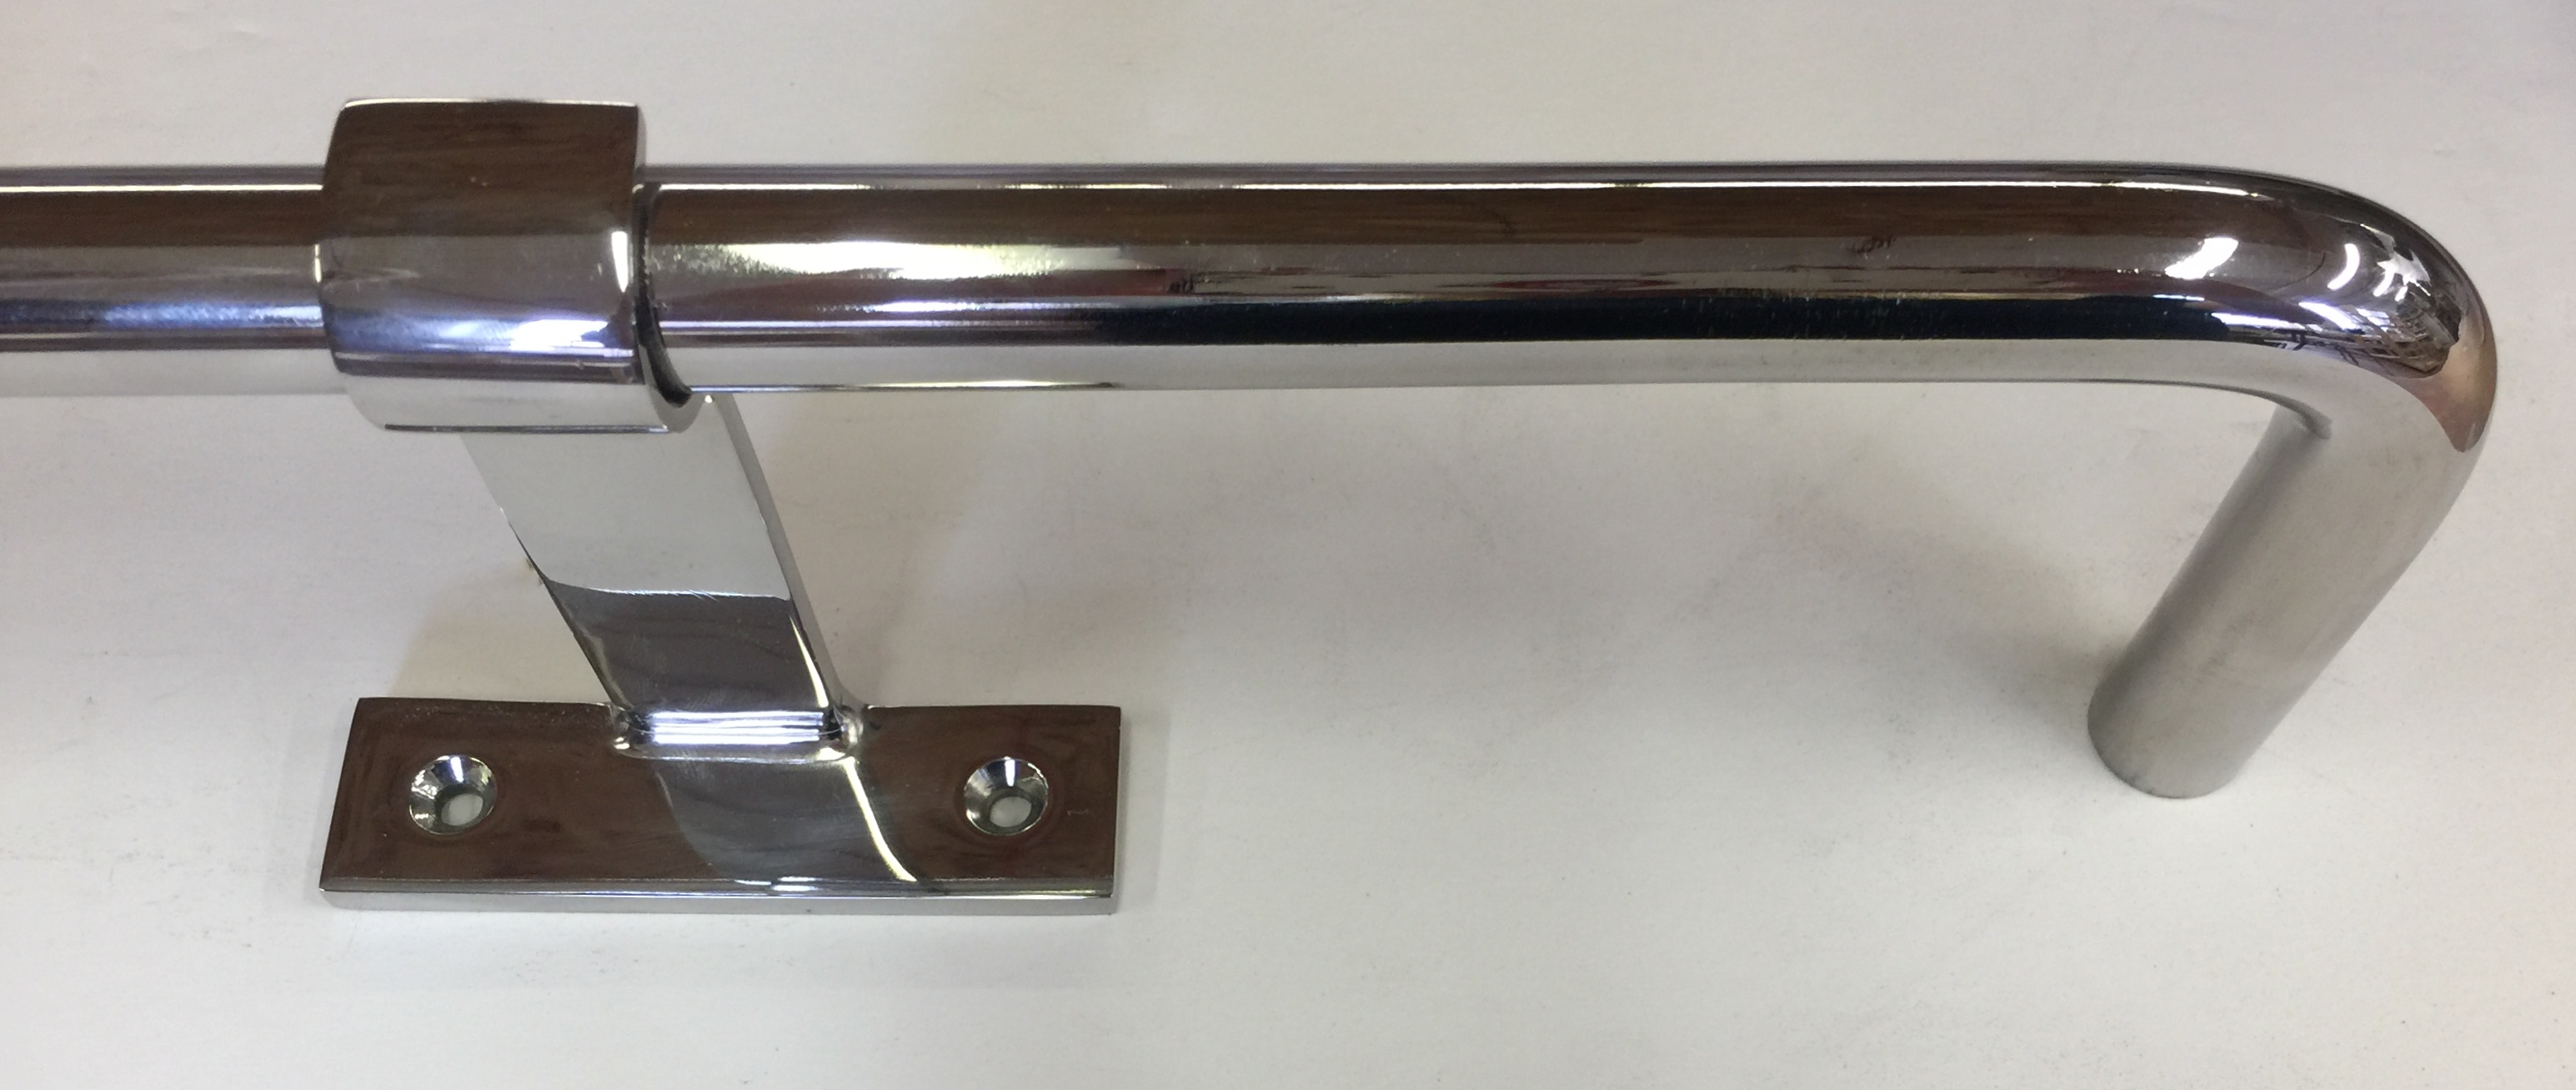 Polished Stainless Steel Rod with Smooth Elbow Return & Bracket with Horizontal Back Plate